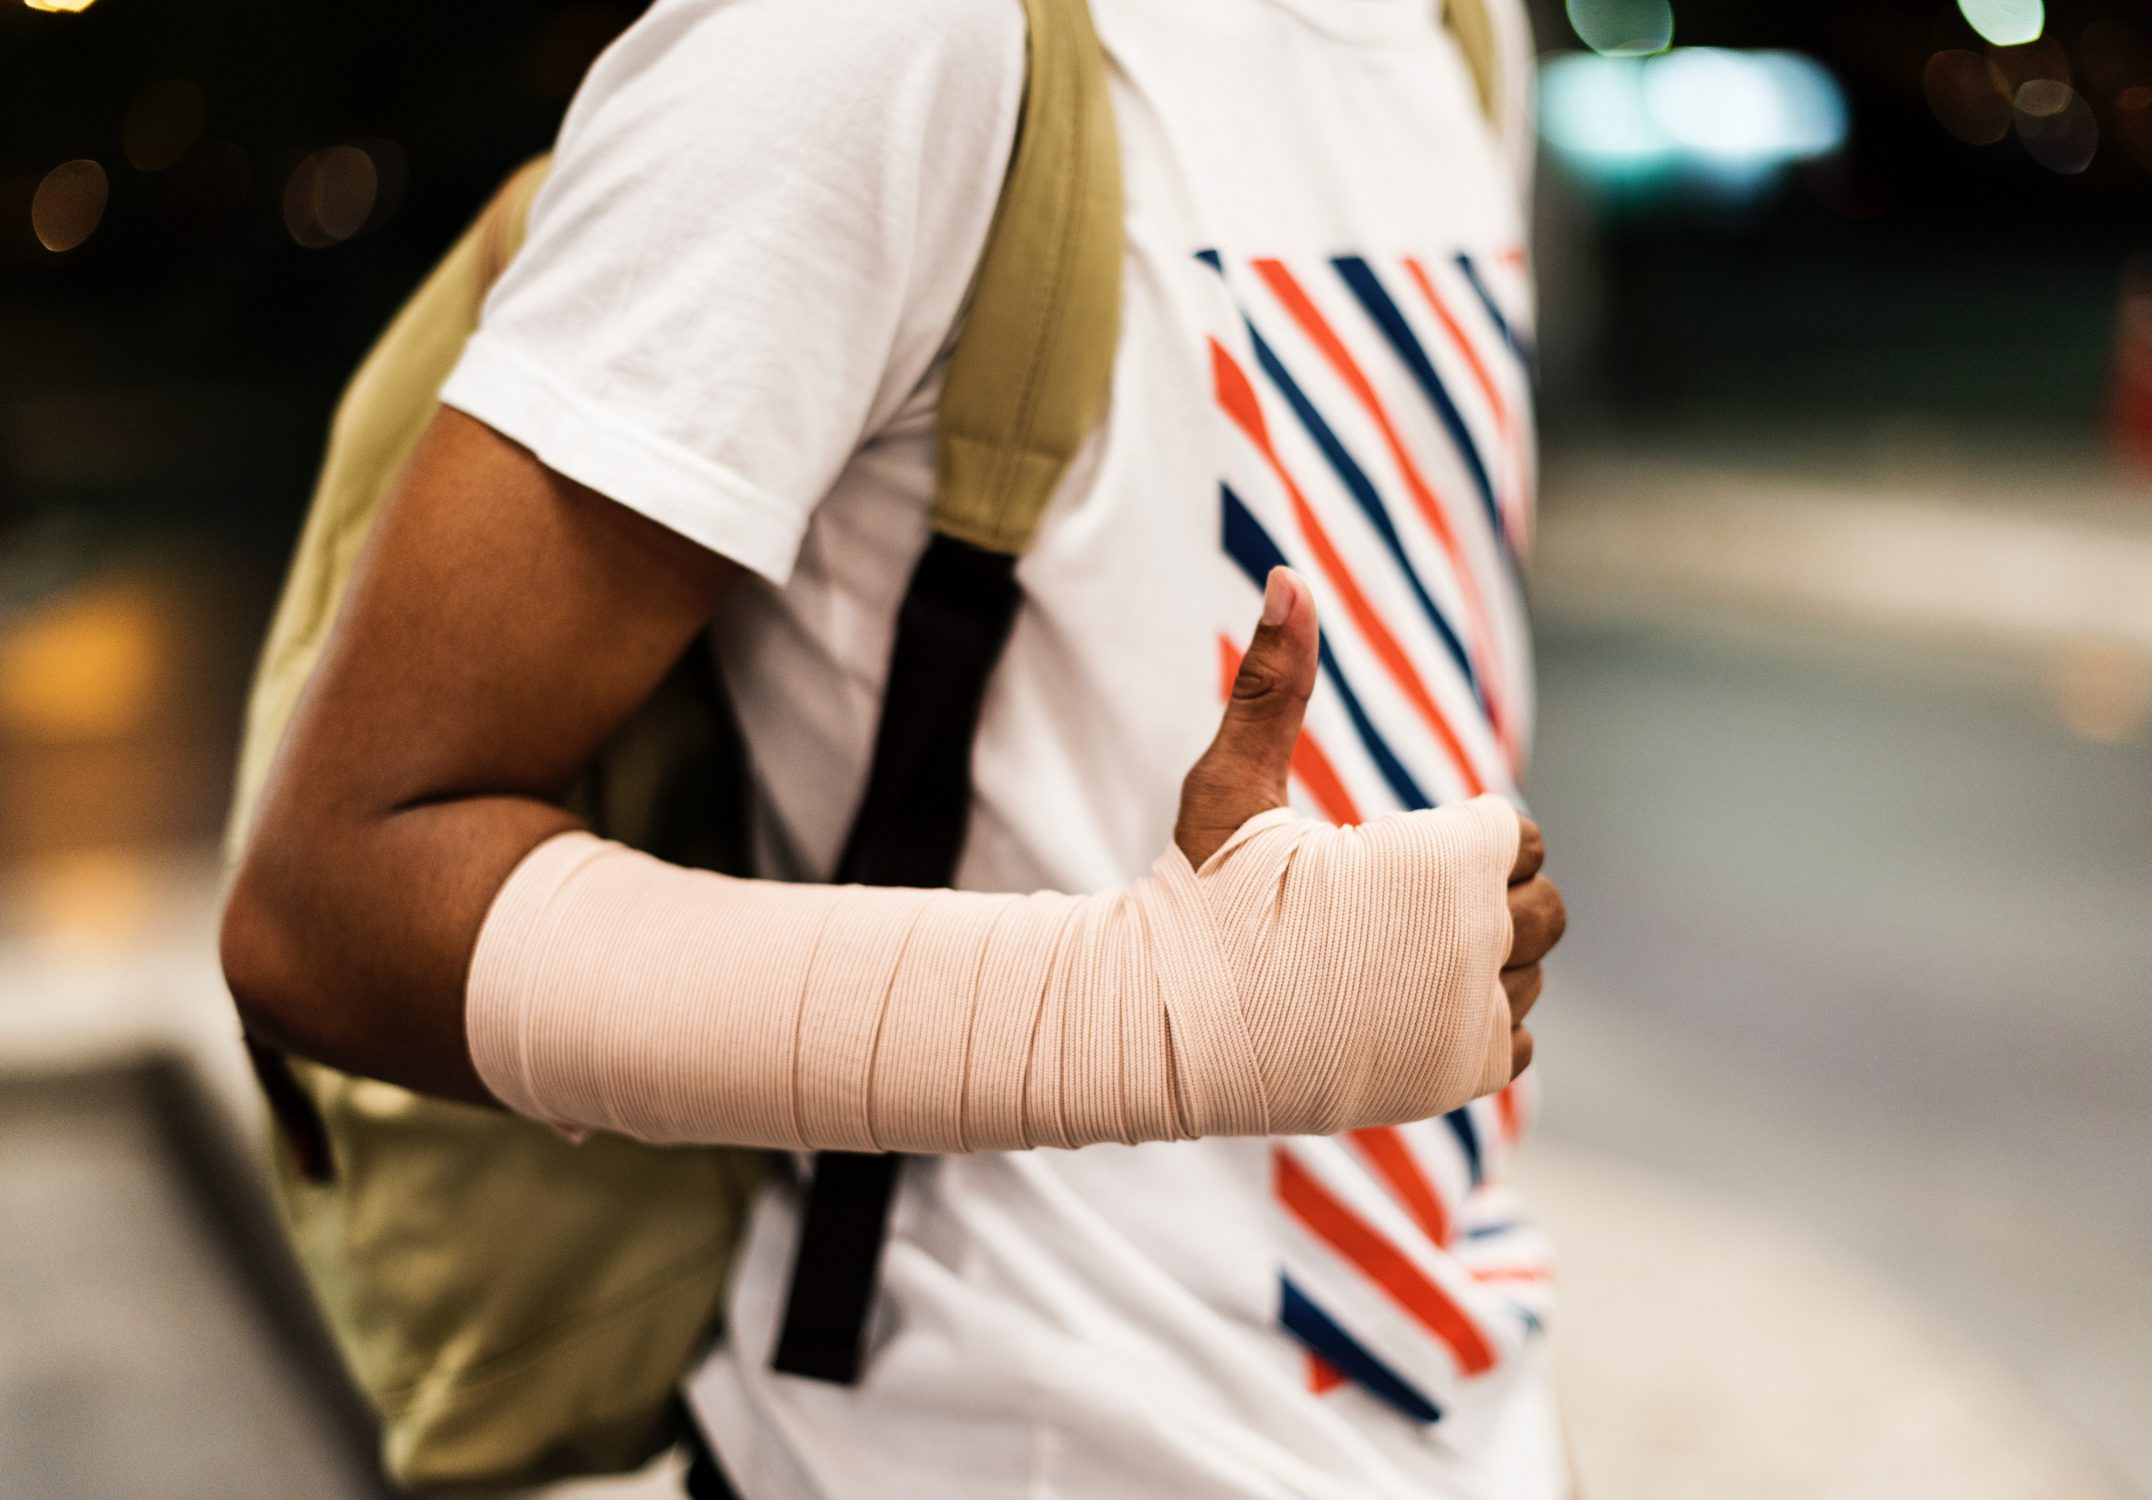 Man with wrapped arm